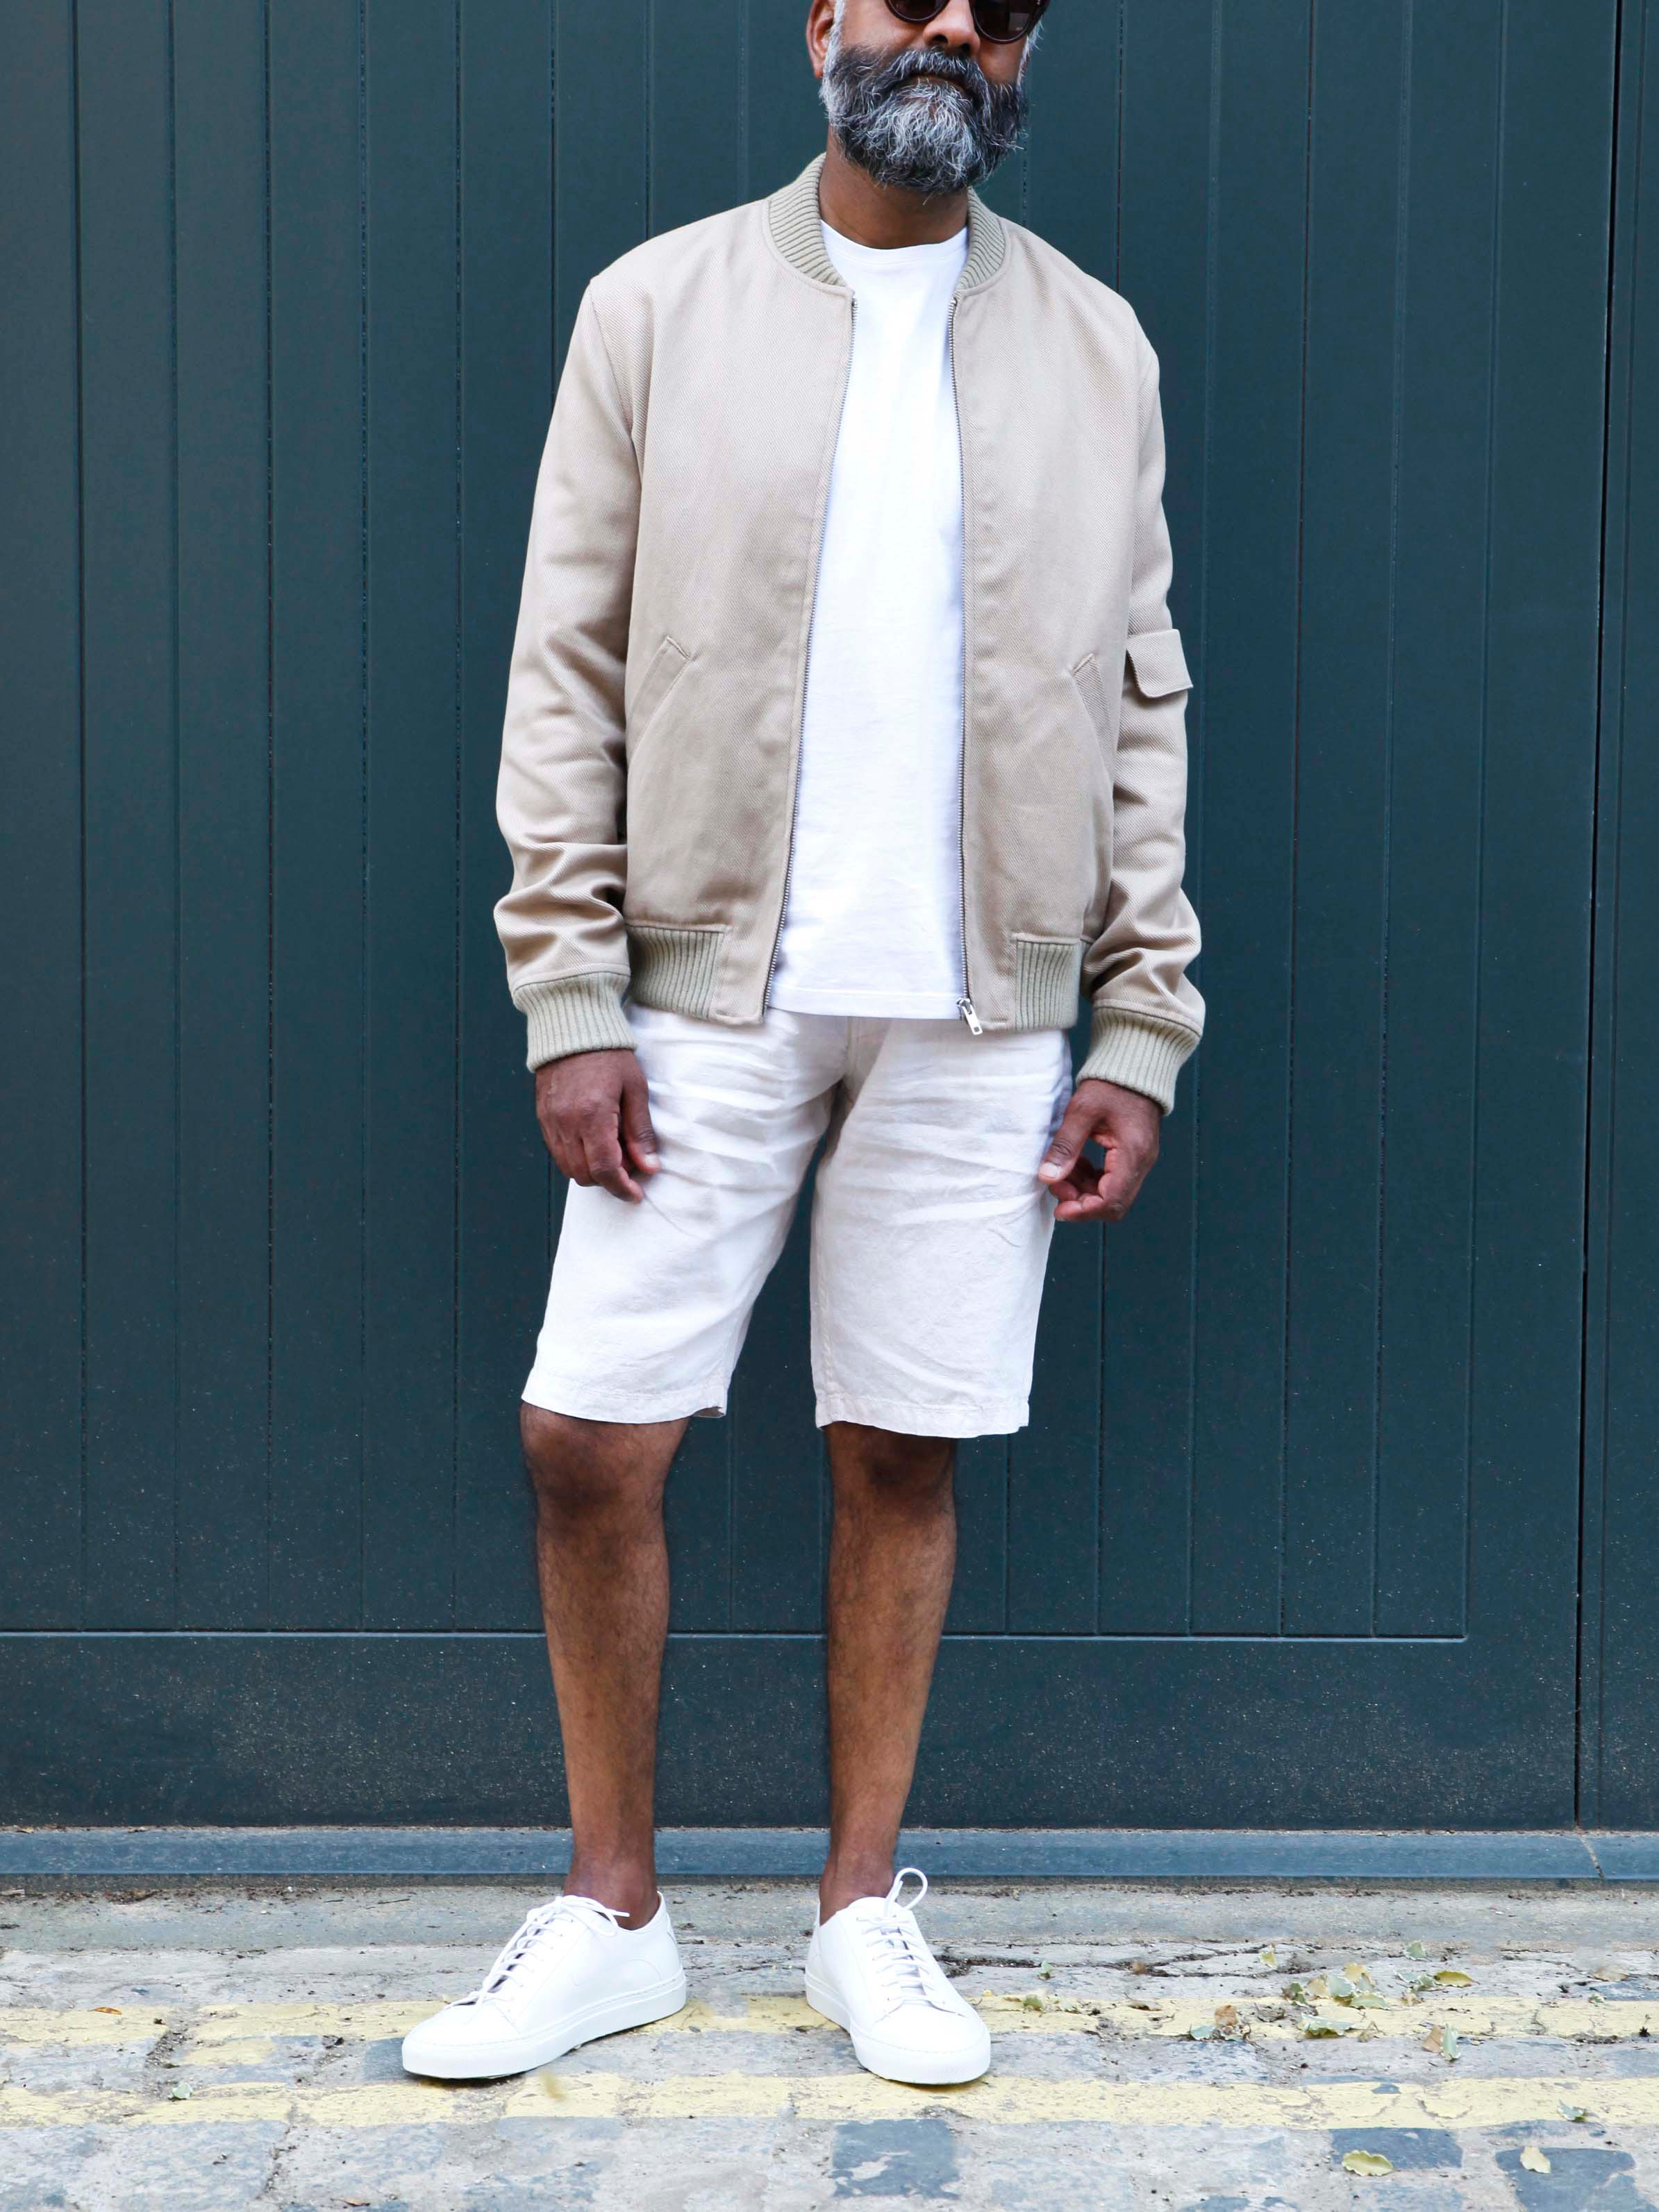 Men's outfit idea for 2021 with bomber jacket, white crew neck t-shirt, stone shorts, white trainers. Suitable for summer.